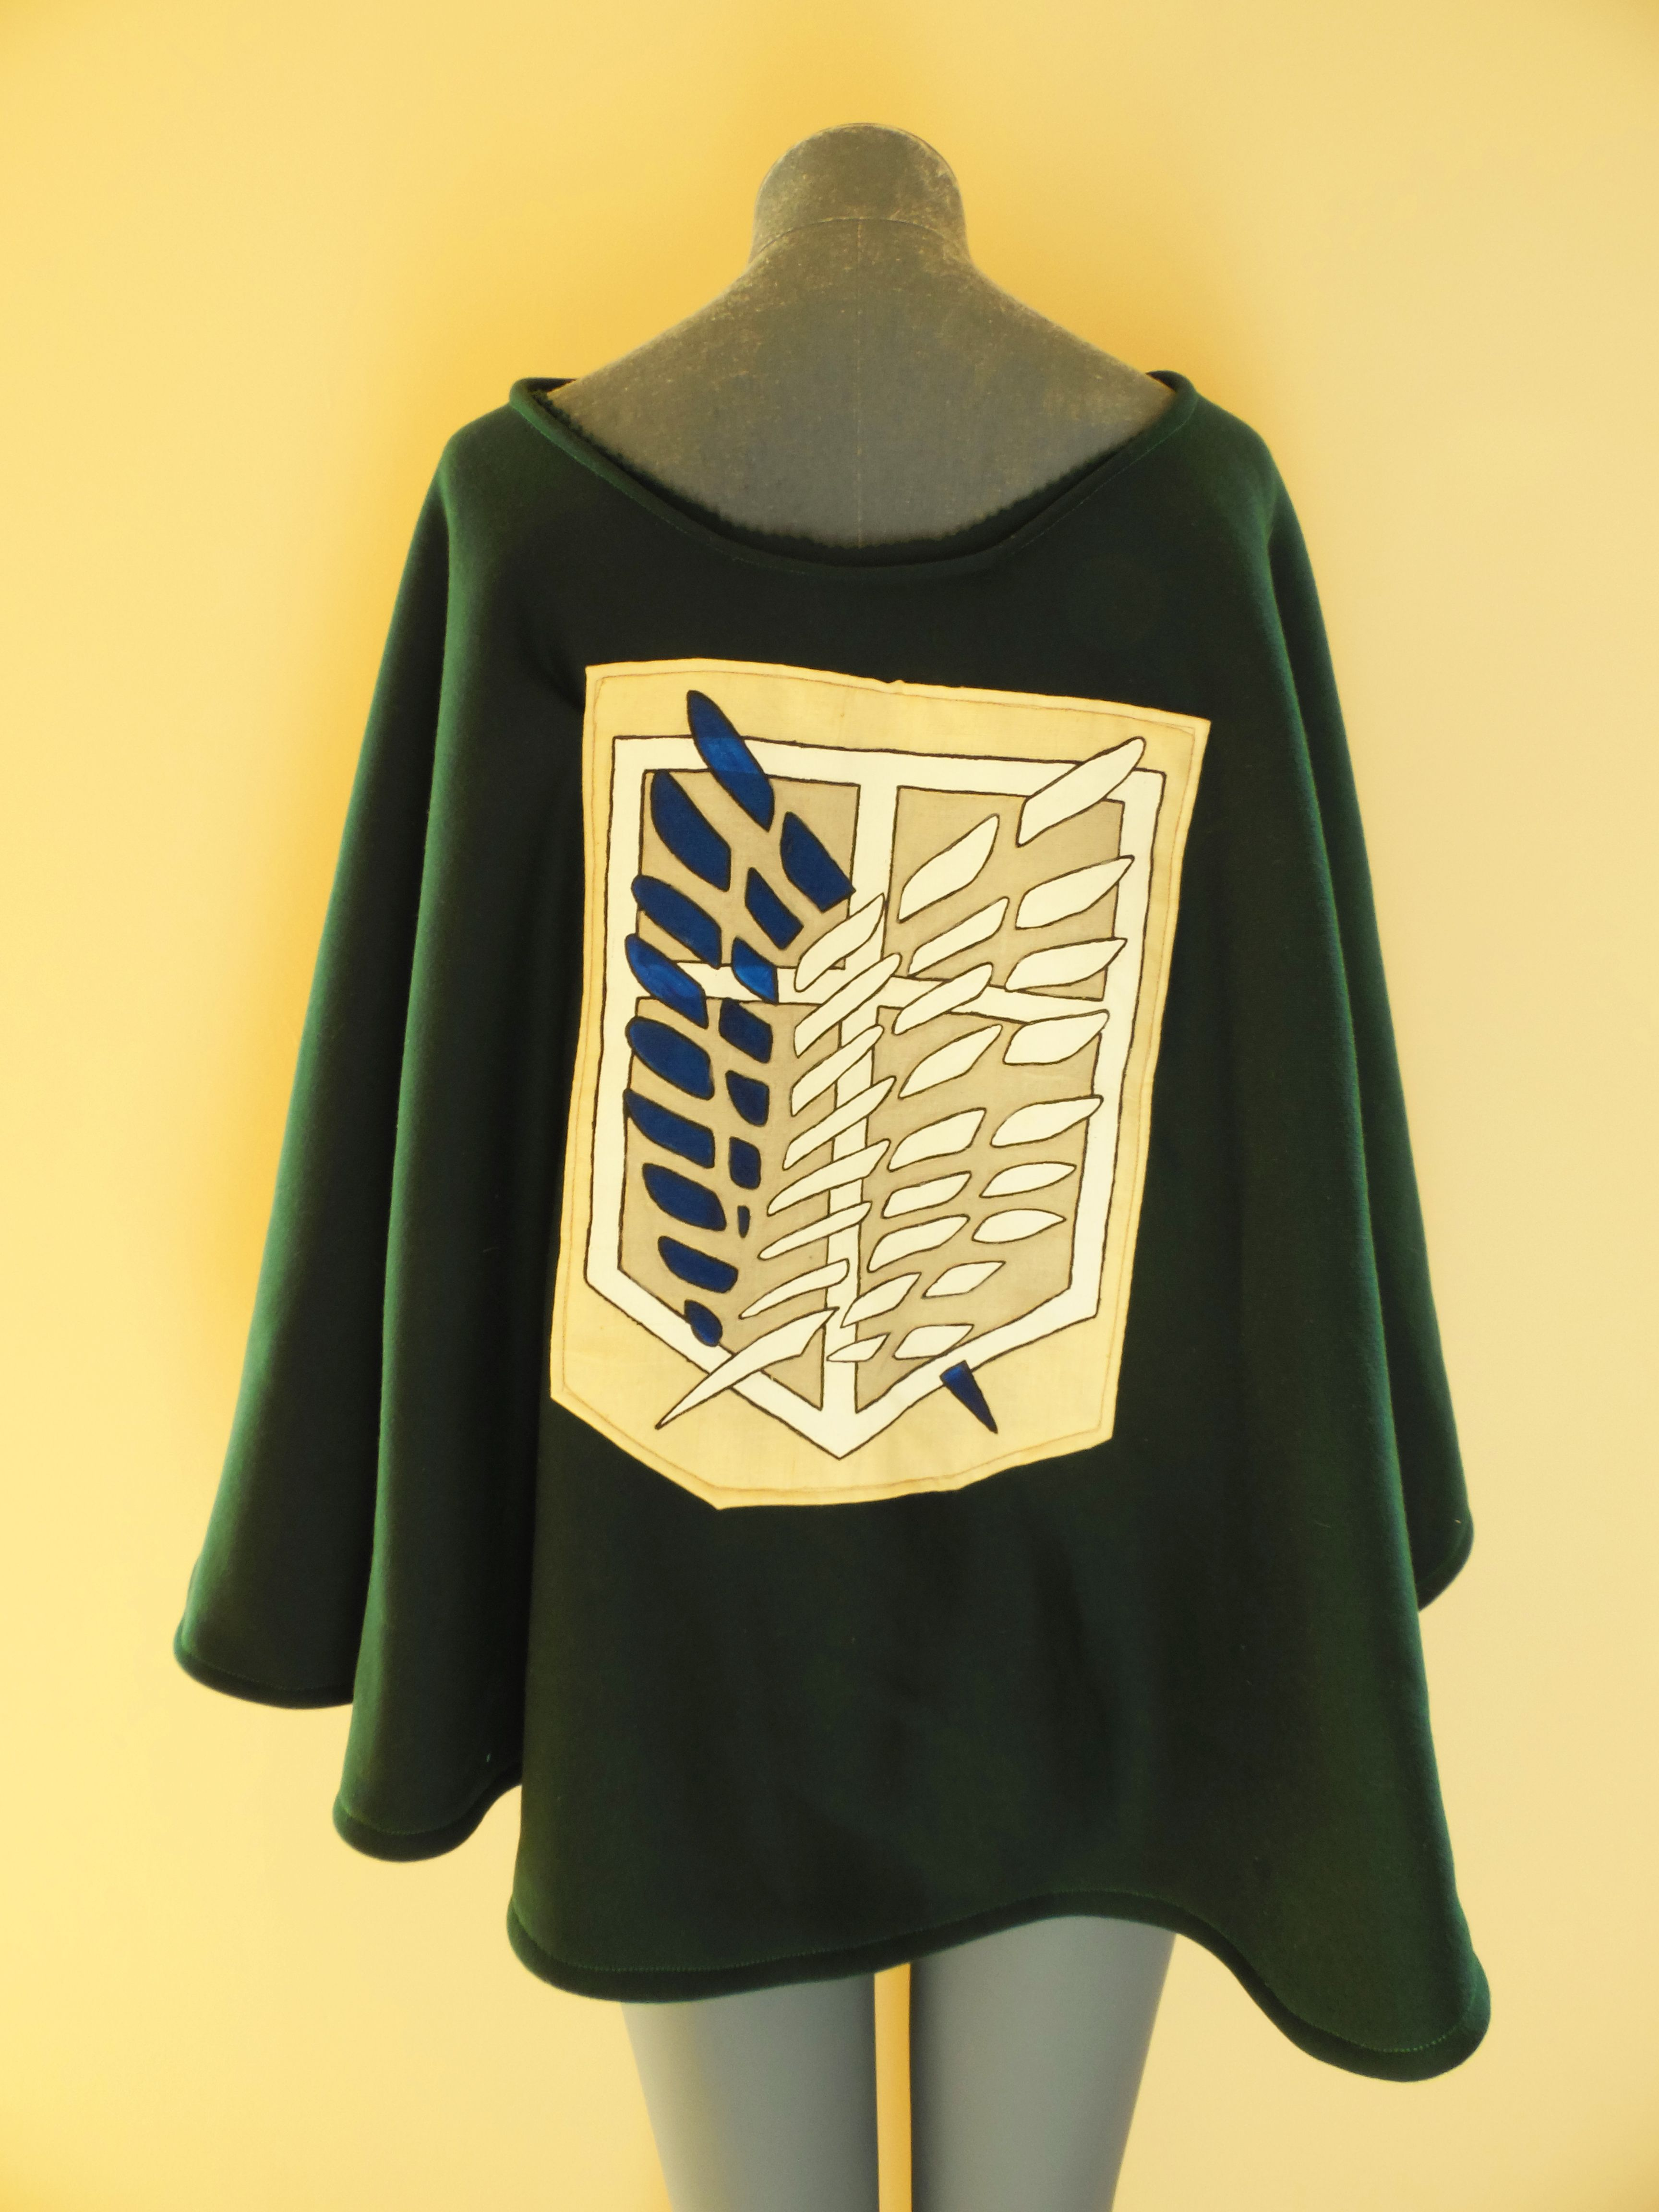 Attack on titan serving corps cape made with fleece cotton cotton